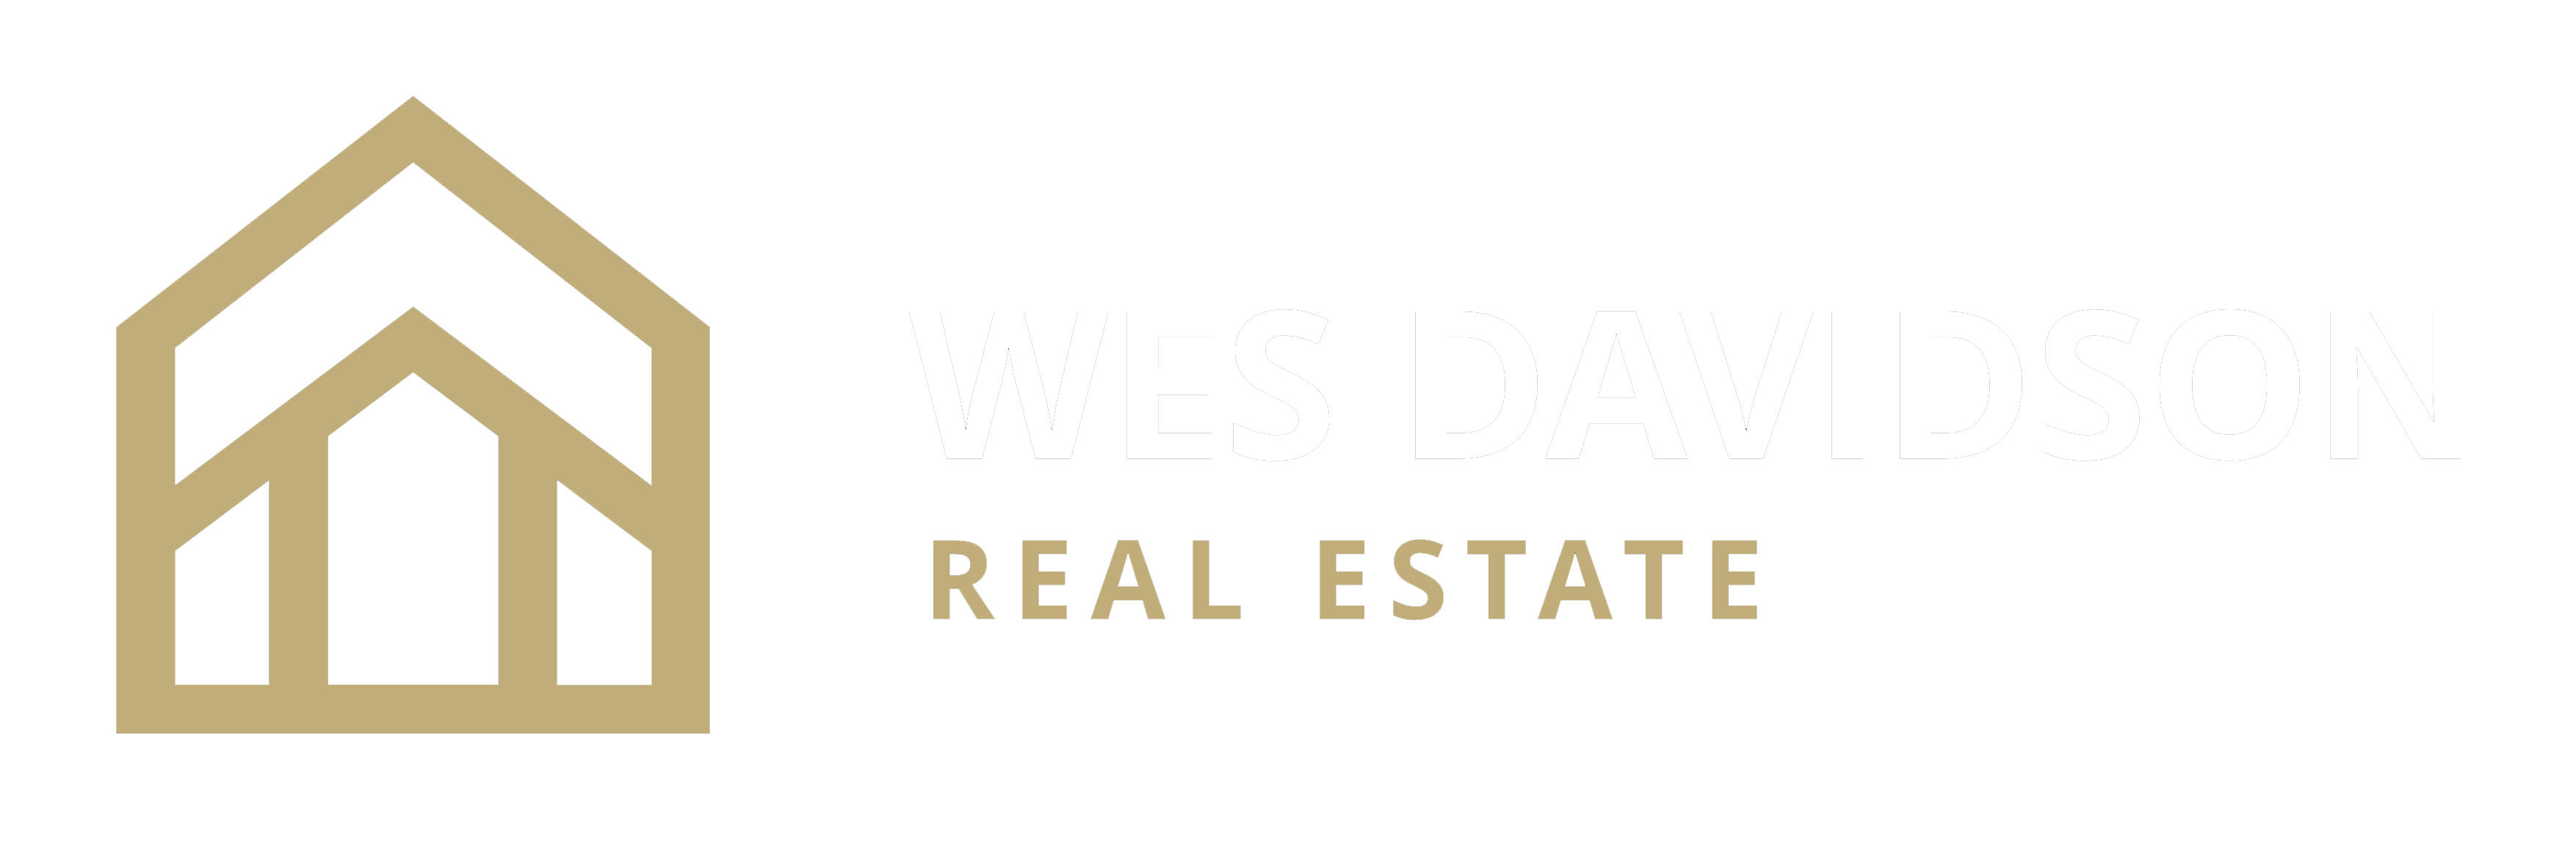 Wes Davidson Real Estate